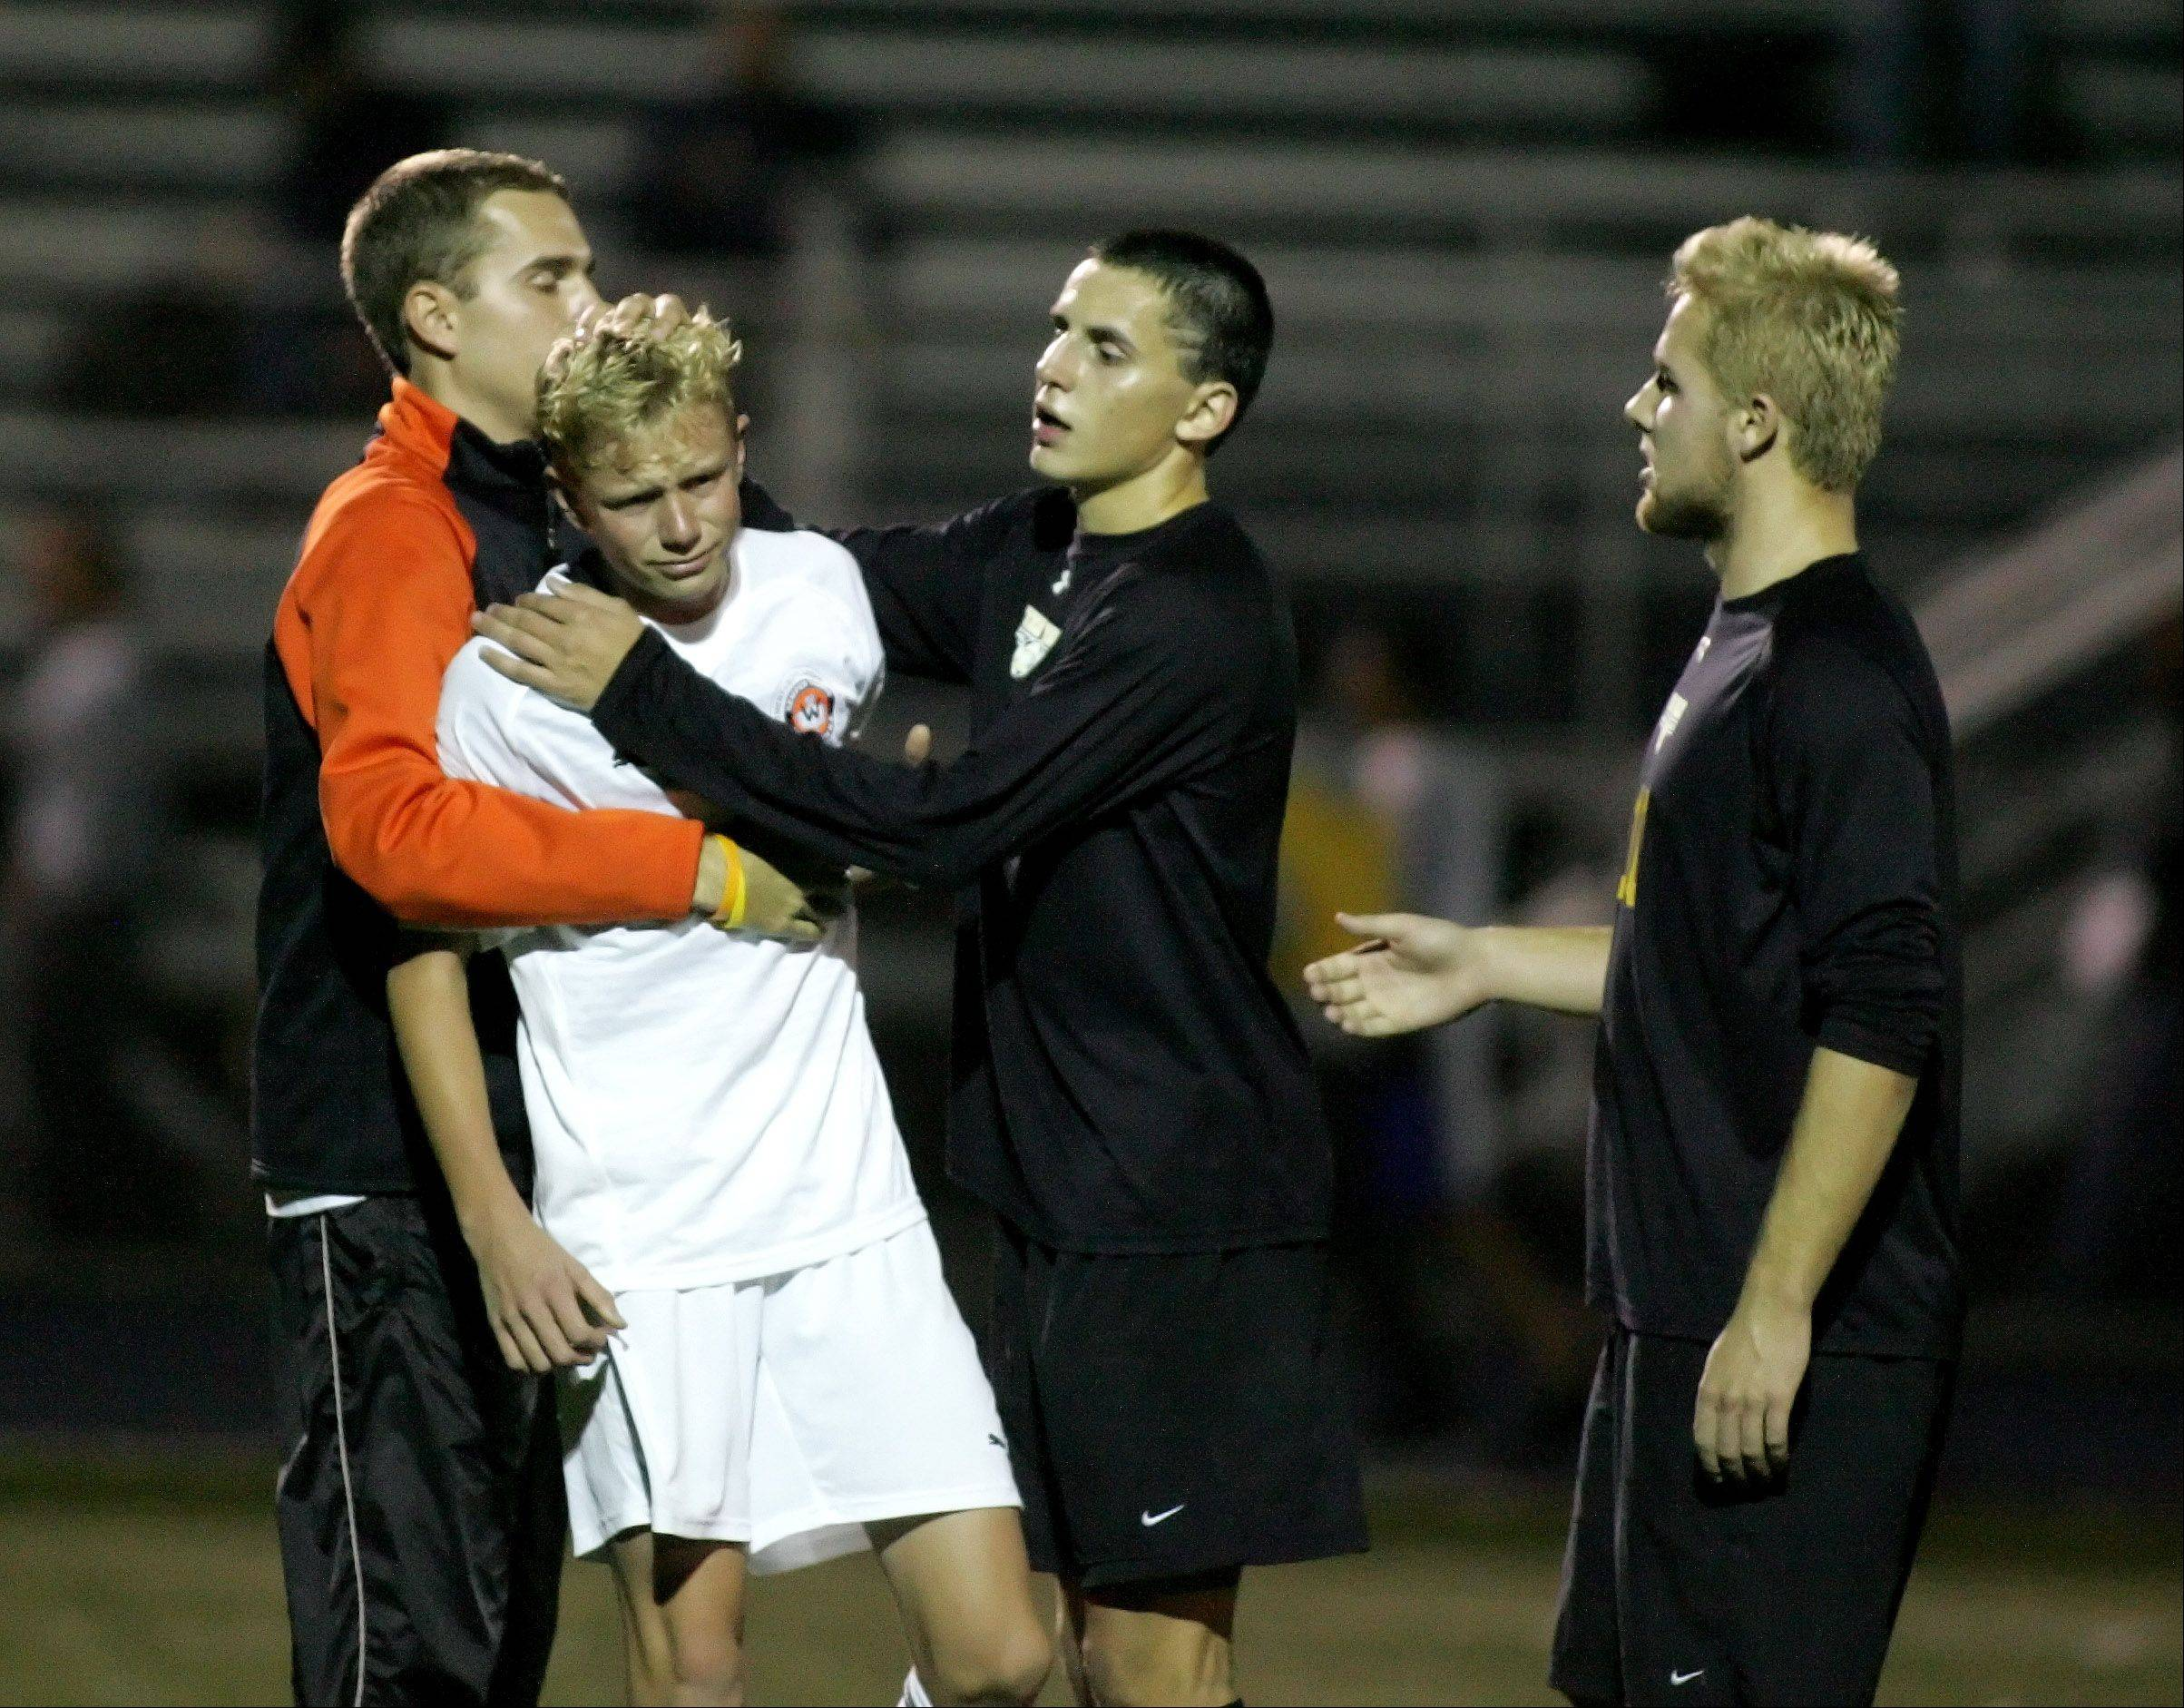 Franco Cattani and Jake Goehring, on the right, of Metea Valley, help console Patrick Nielsen of Wheaton Warrenville South after Metea won 1-0 in boys Class 3A sectional soccer in West Chicago.